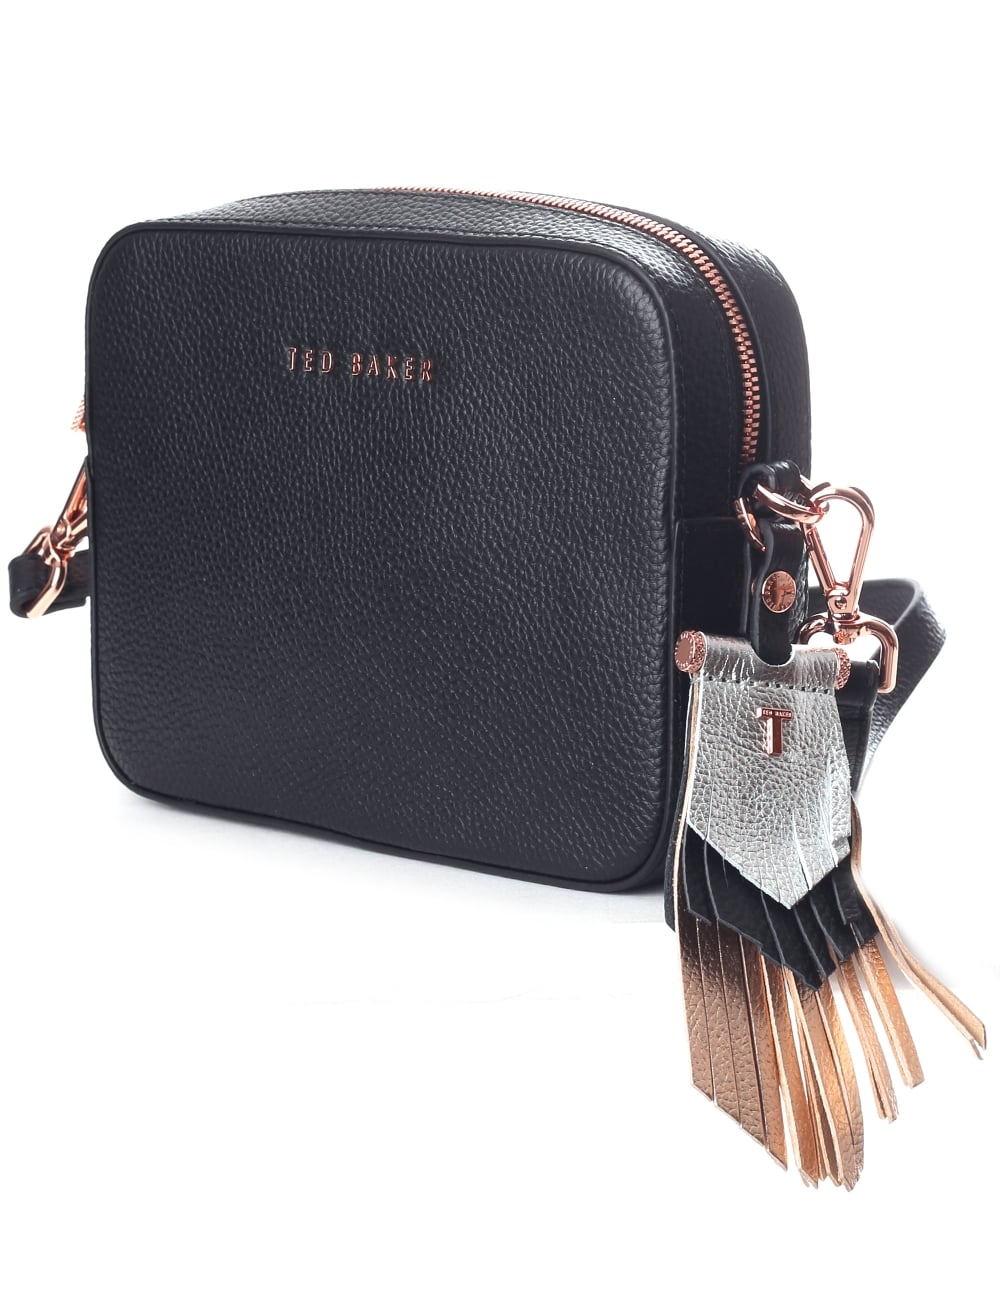 248289e5725 Ted Baker Darwina Women's Metallic Tassel Camera Bag